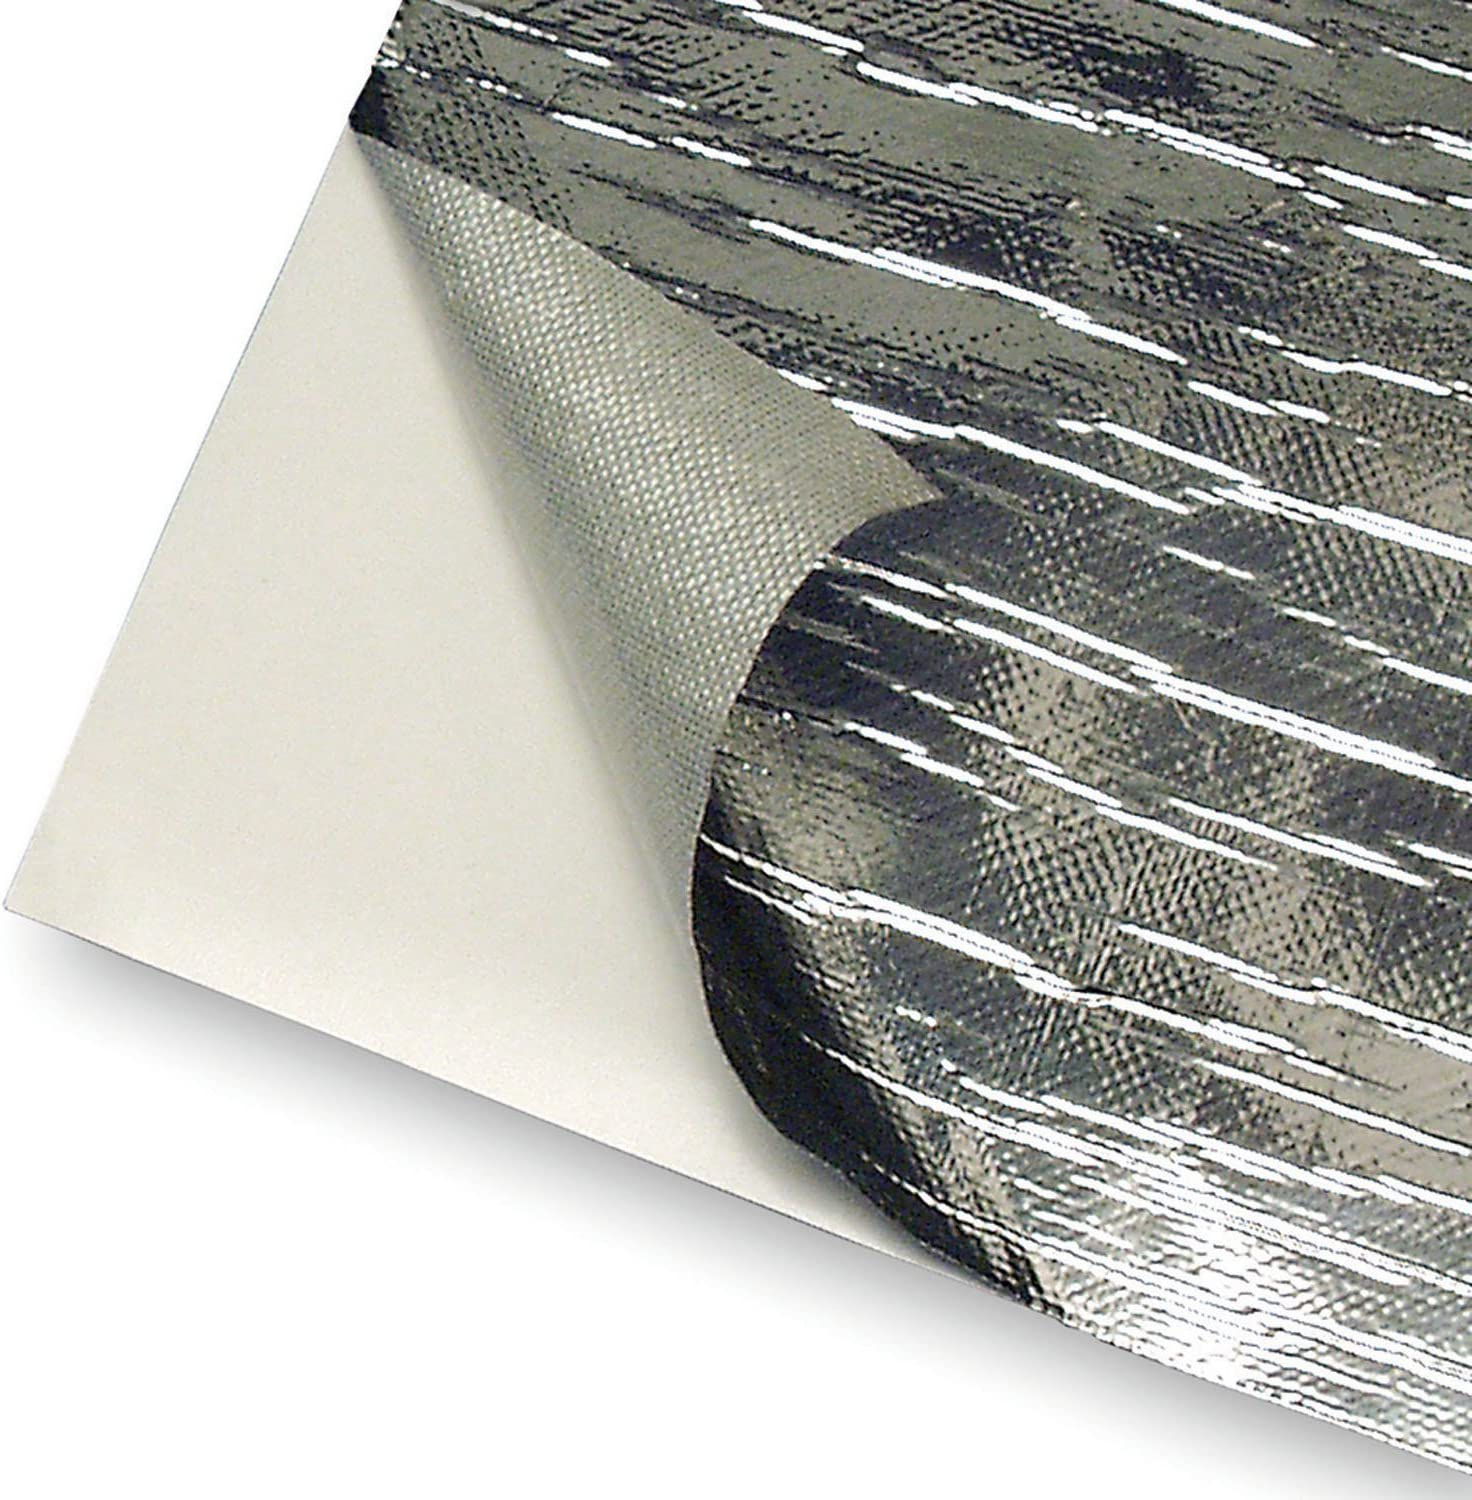 Design Engineering 010412 Excellence Bombing free shipping Reflect-A-Cool Heat Reflective Adhesiv